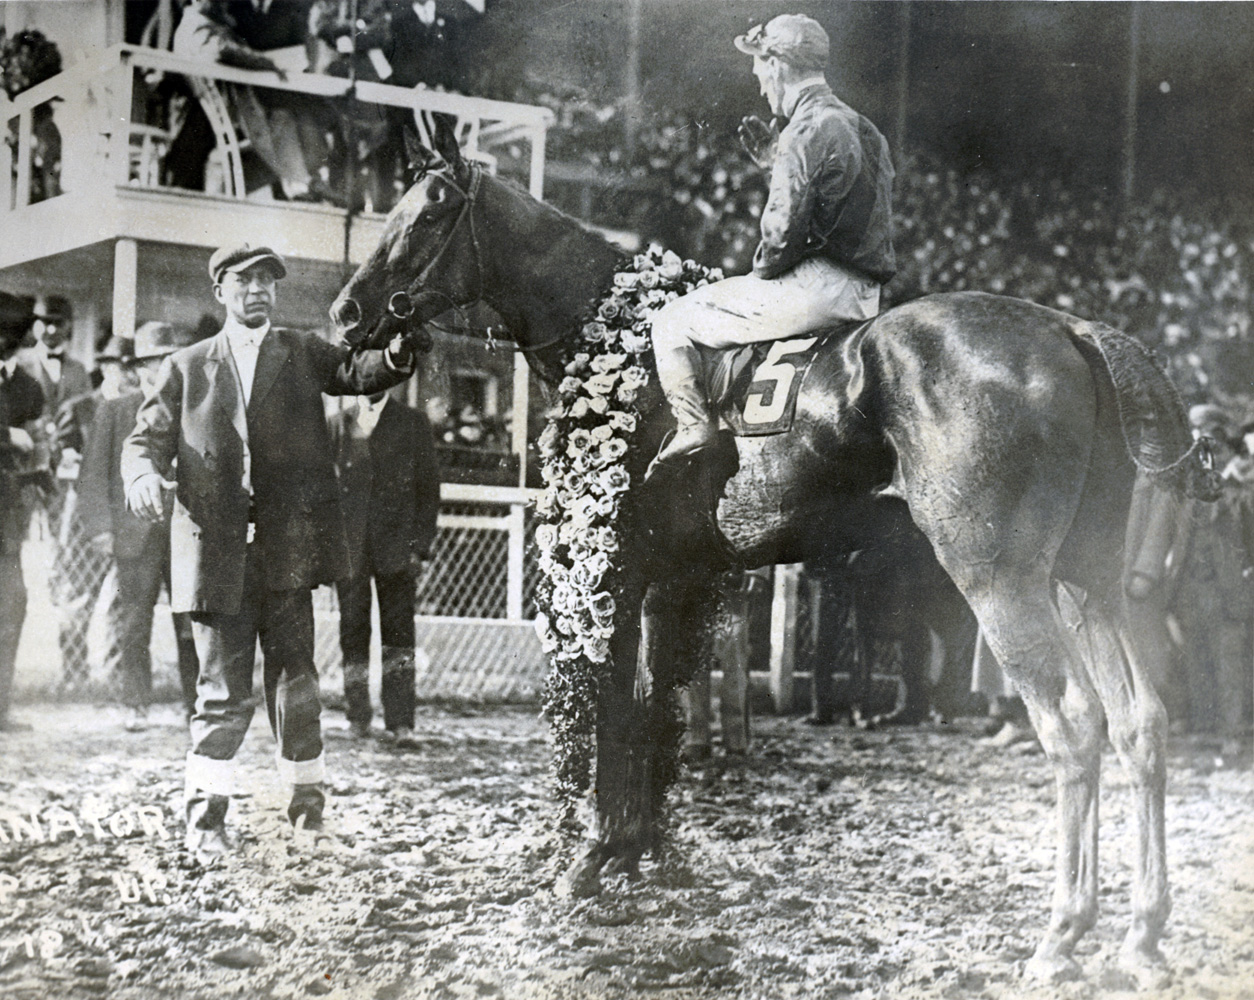 Exterminator (Willie Knapp up) in the winner's circle for the 1918 Kentucky Derby (Museum Collection)